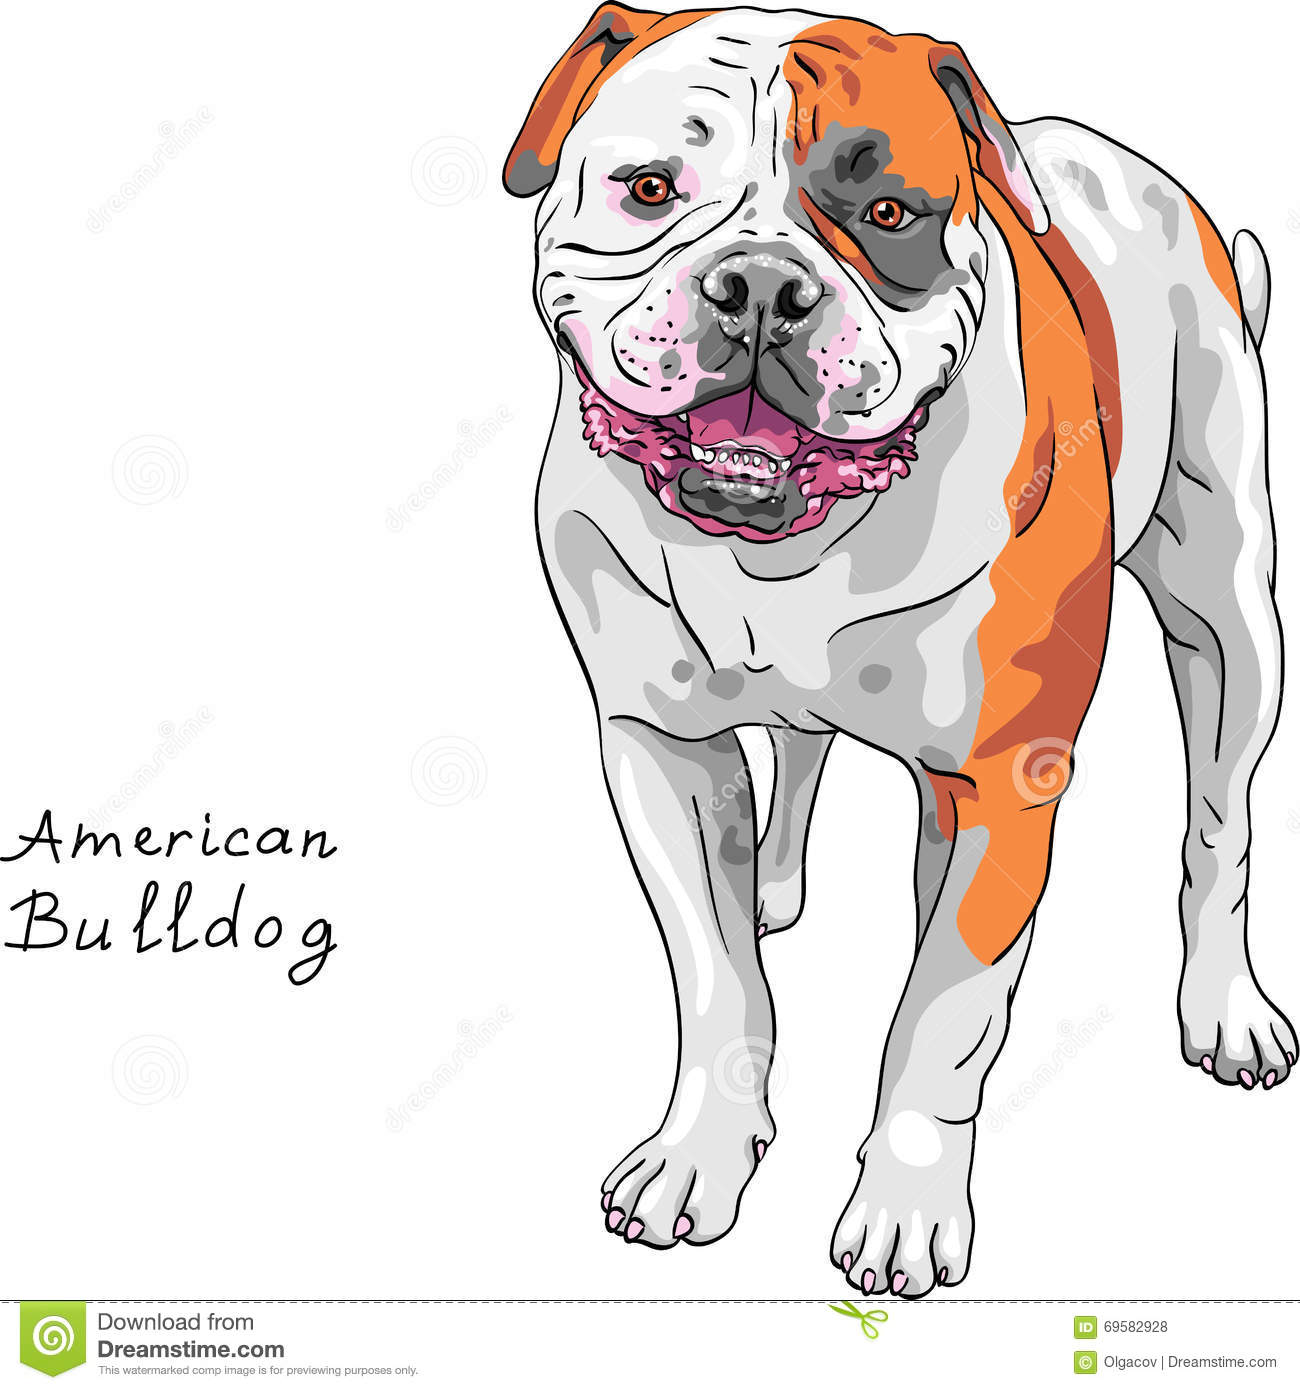 American bulldog vector - photo#26